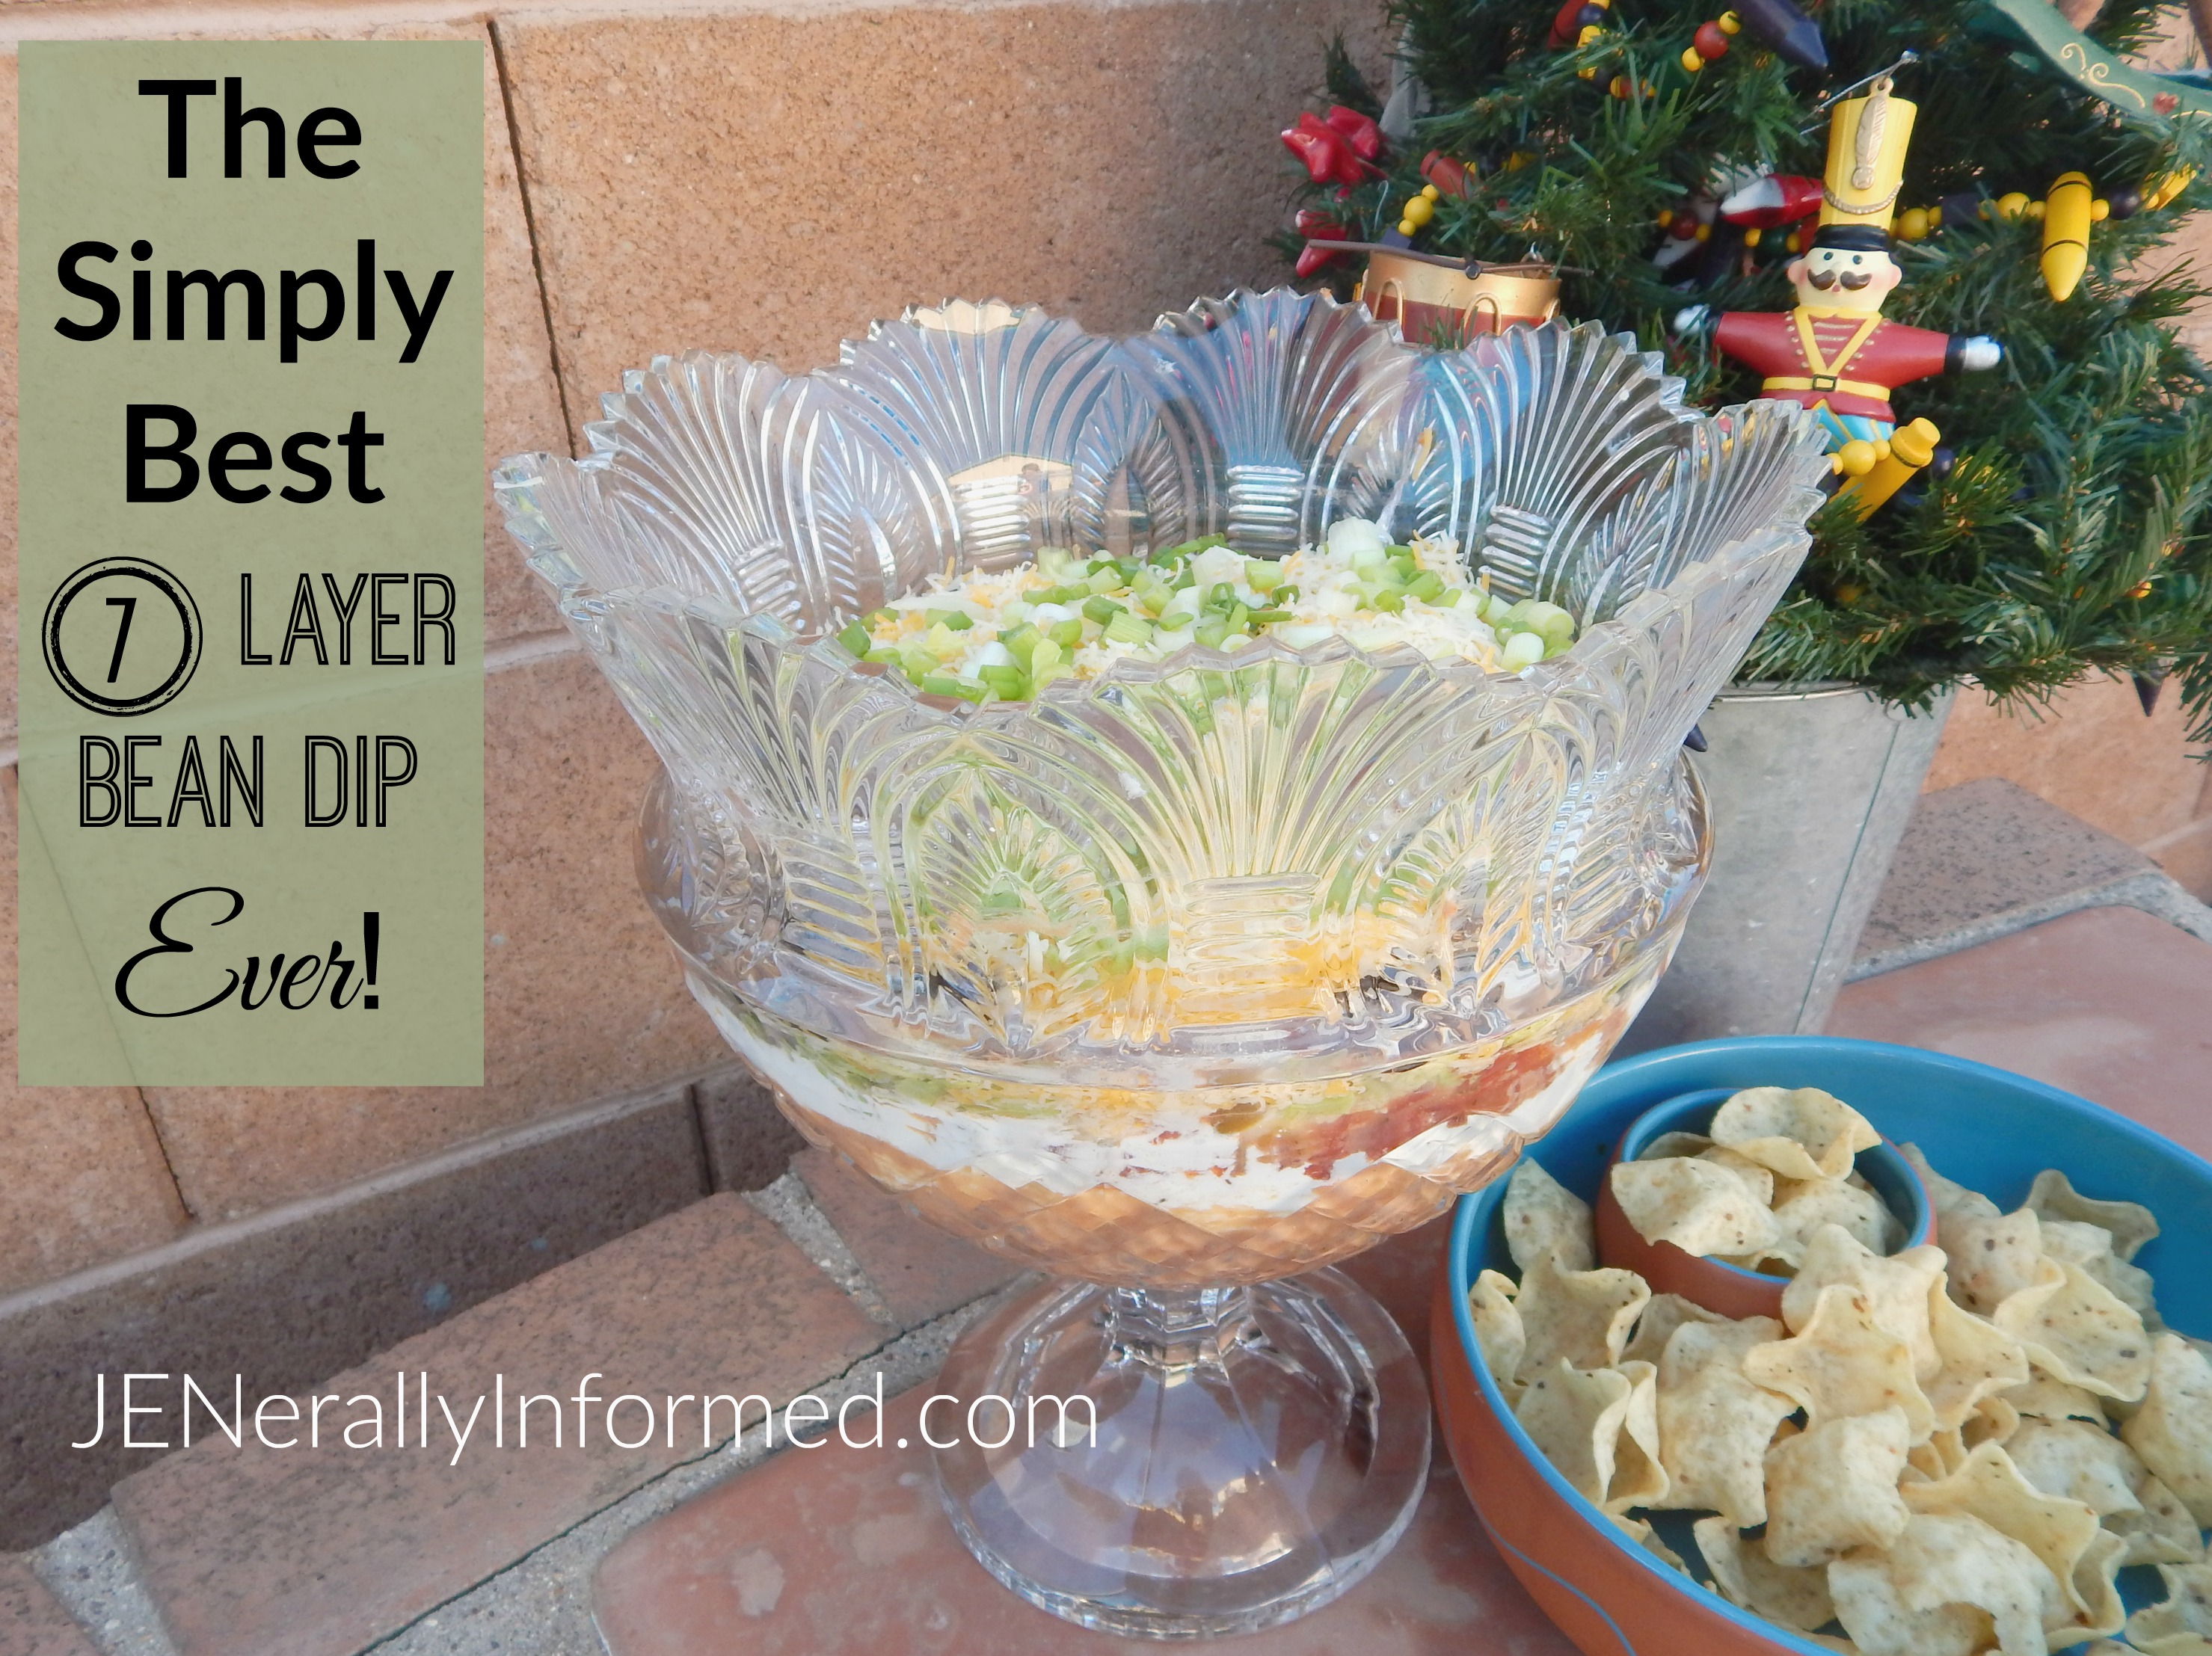 The Simply Best 7 Layer Bean Dip Ever